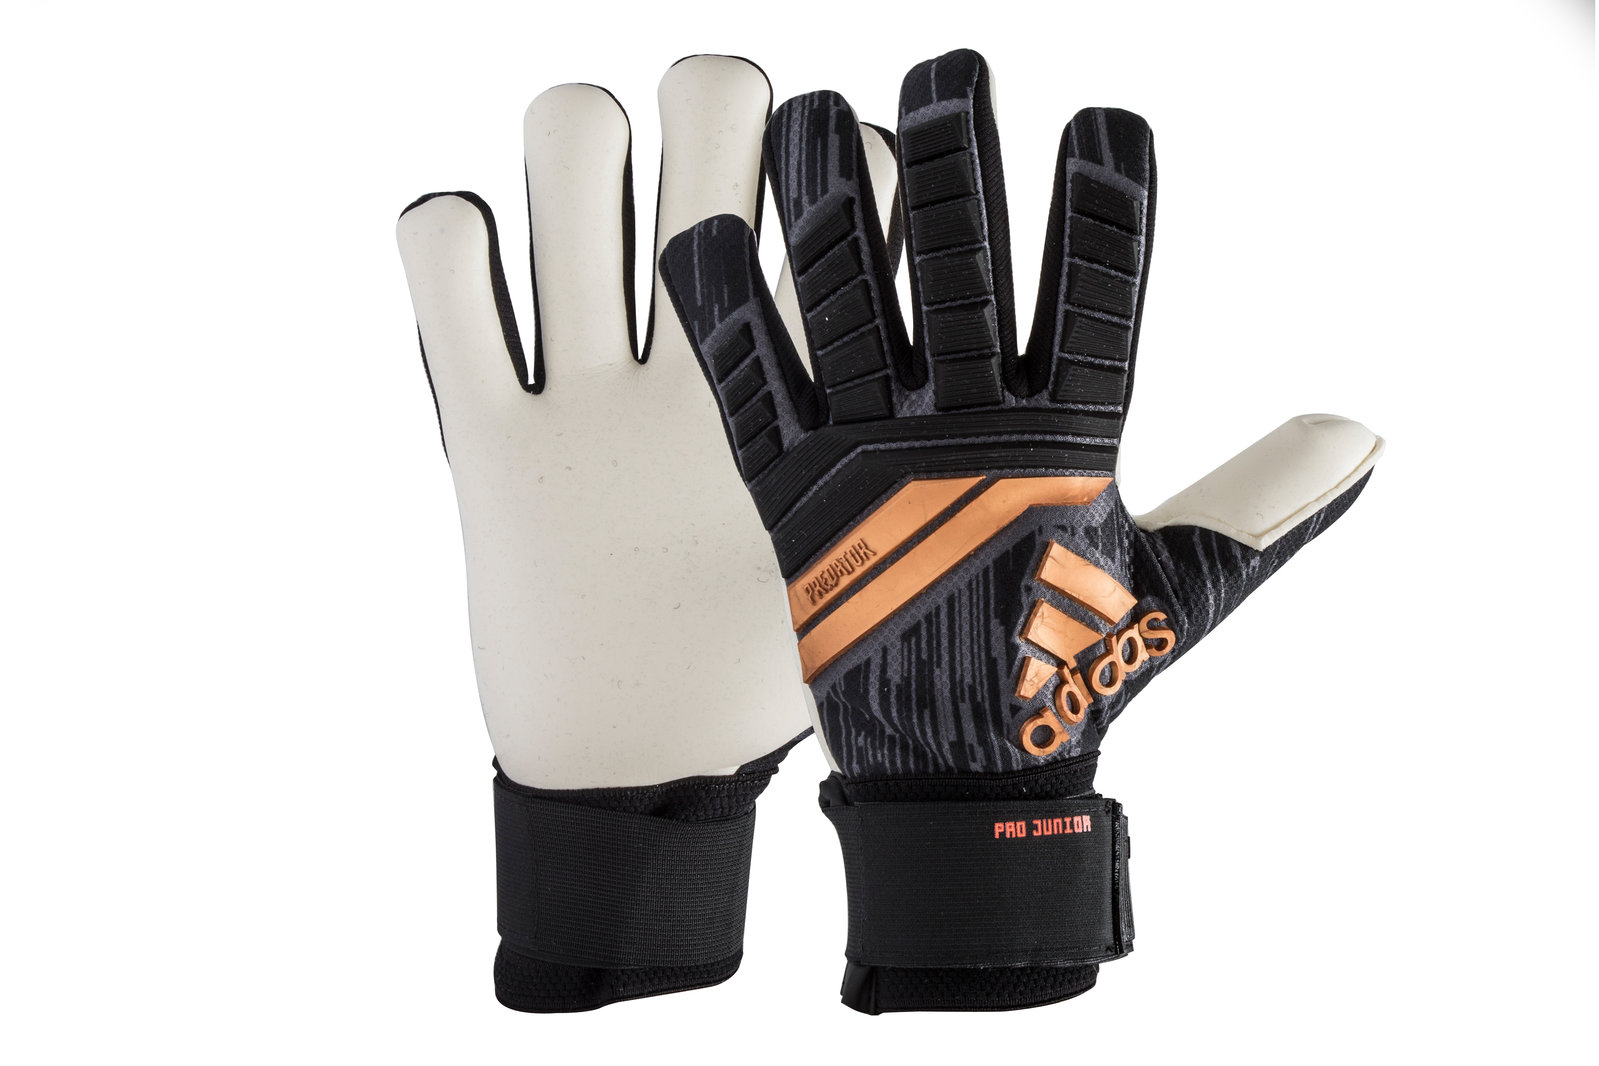 951c7275054 ... where can i buy adidas predator pro kids protector sports safety  goalkeeper gloves black 5cc05 ae1a7